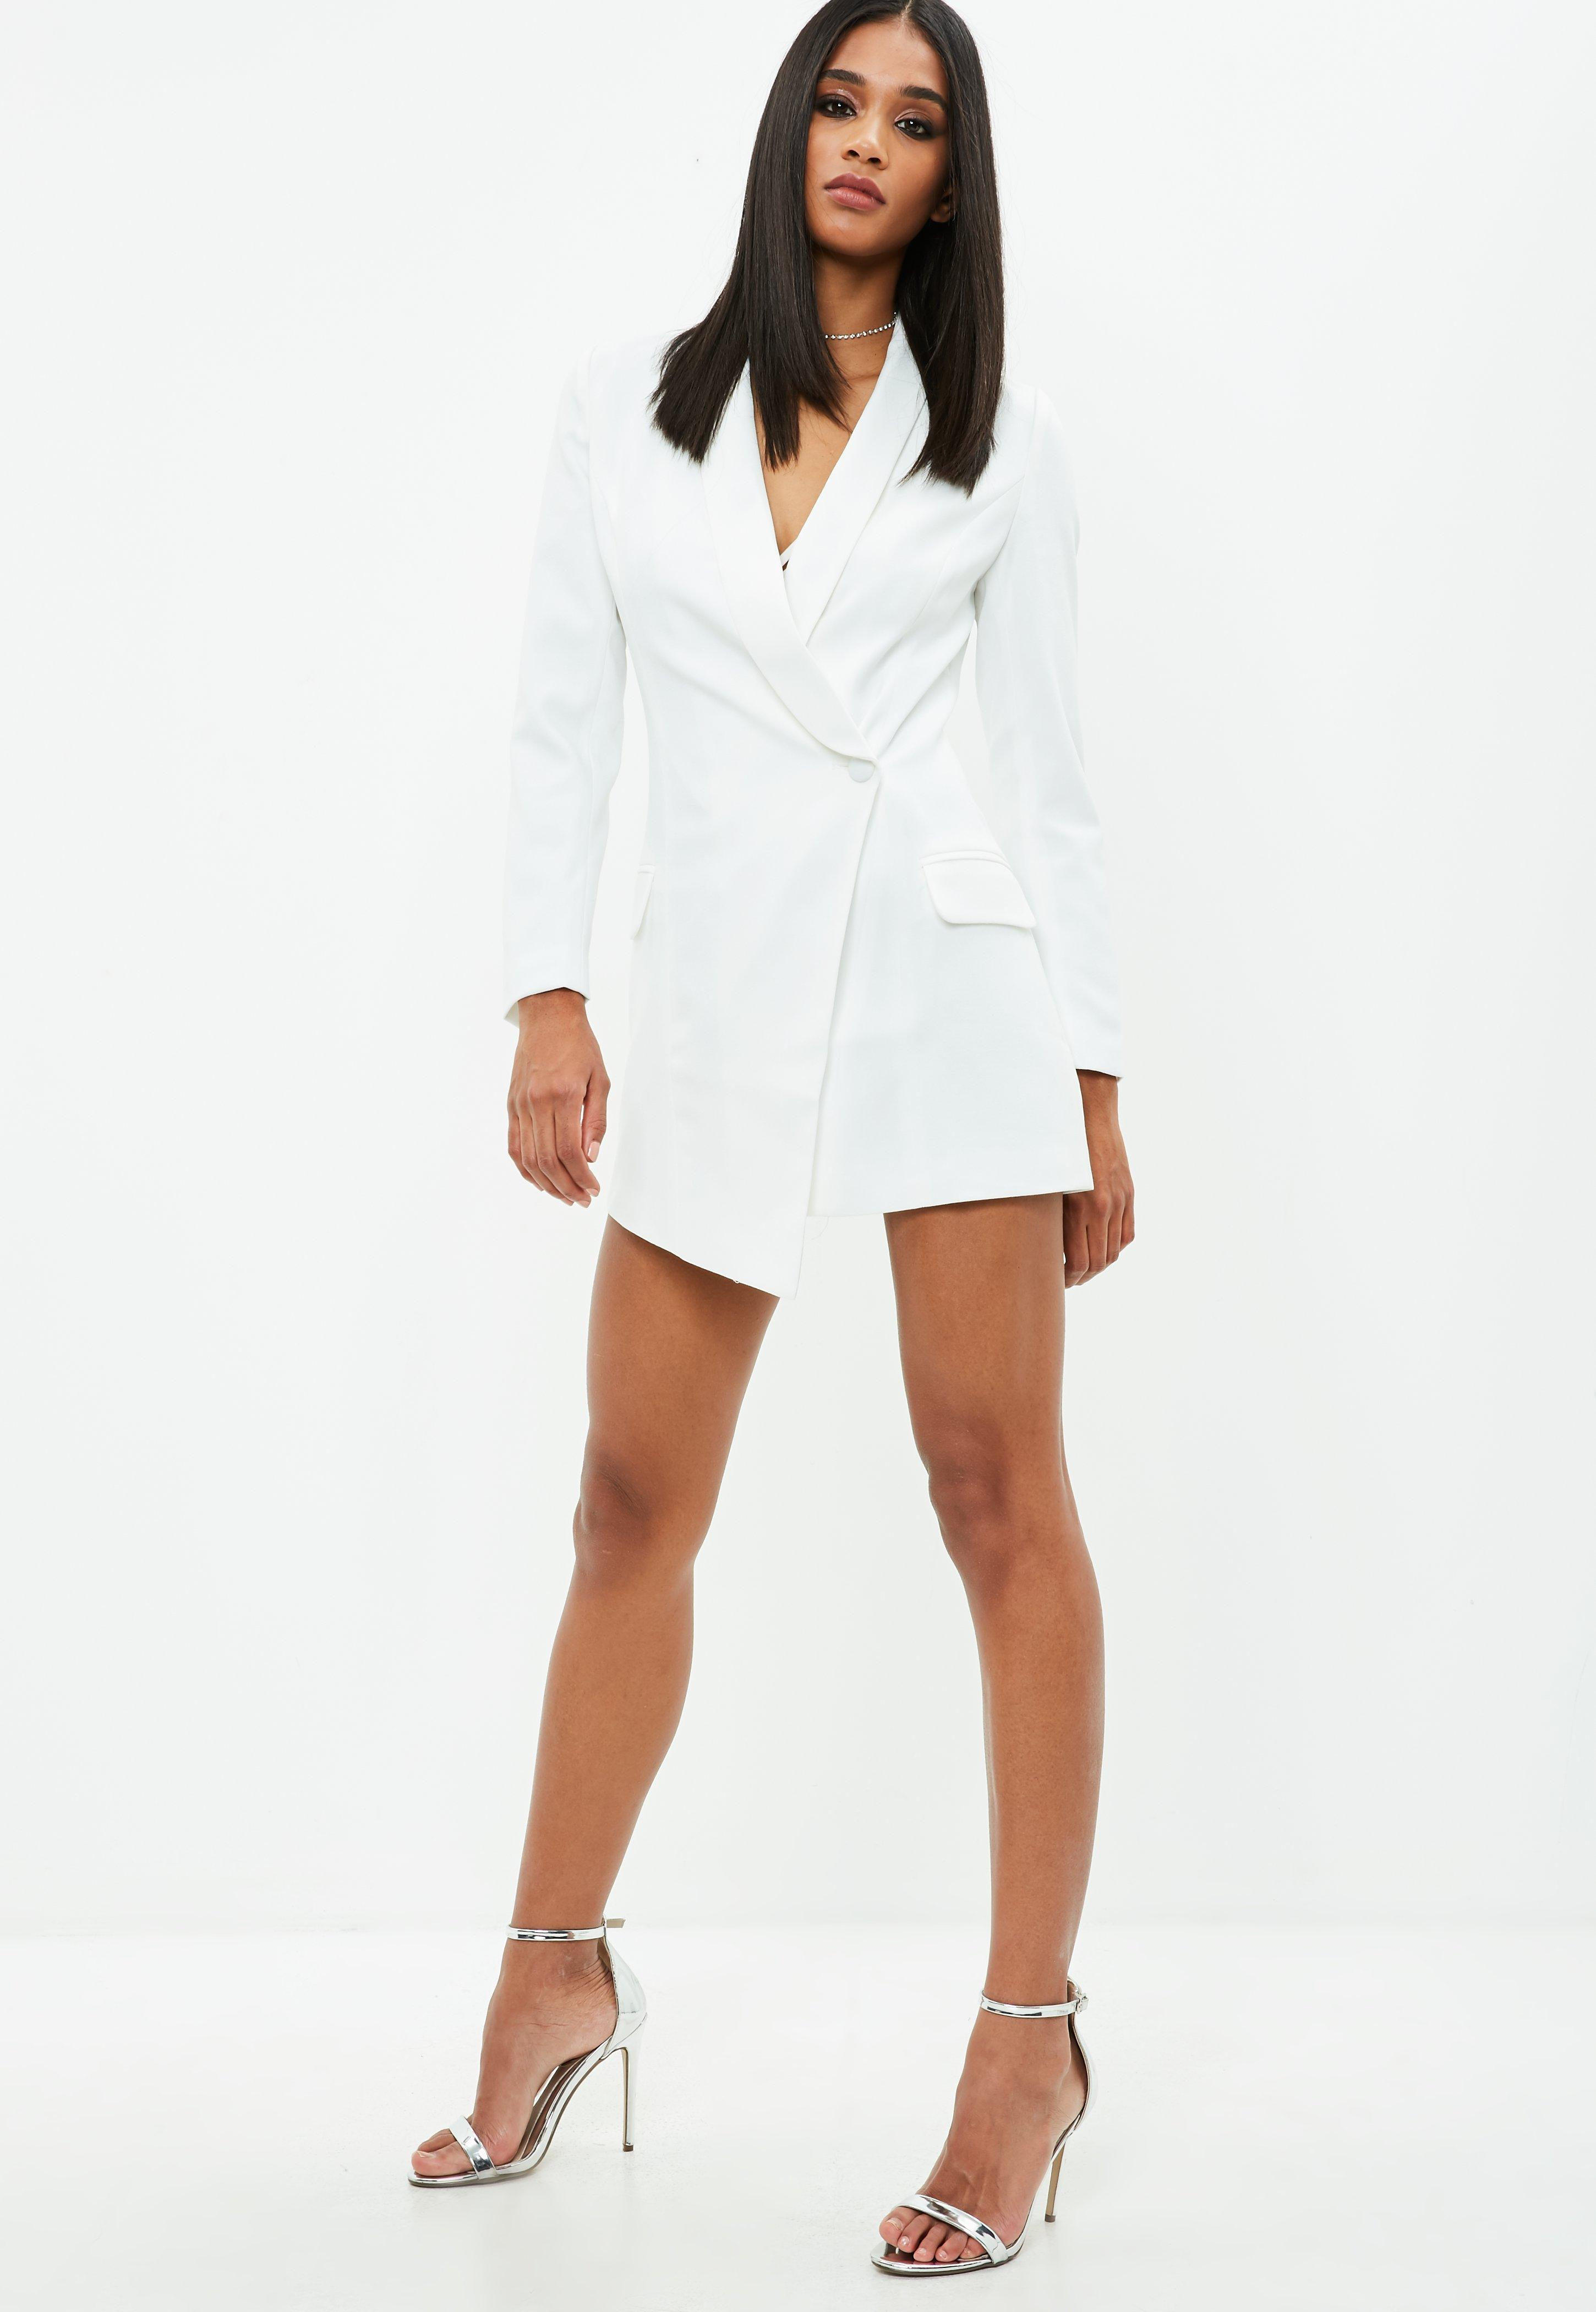 Missguided Petite Blazer Dress Best Place New Styles Free Shipping Shopping Online eV8m0K